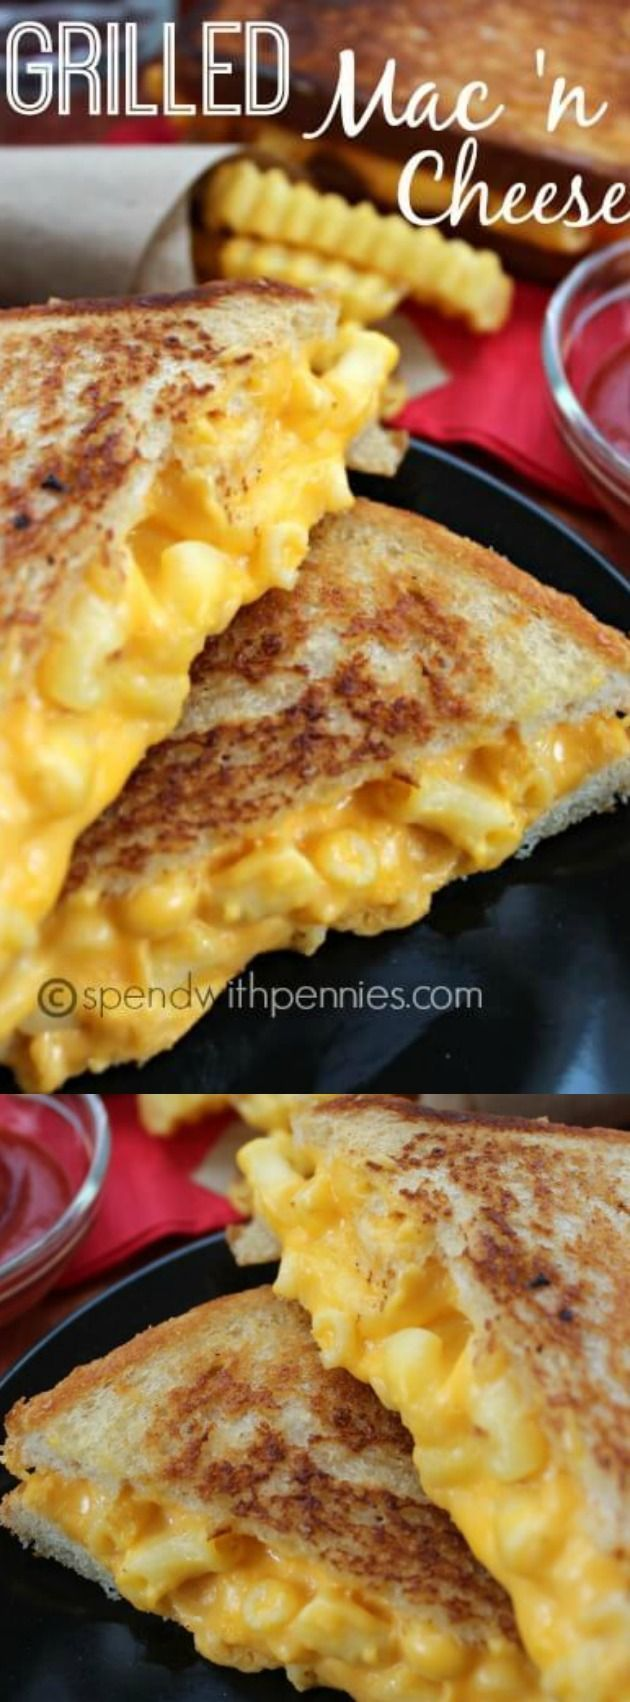 These Grilled Mac and Cheese Sandwiches from Spend with Pennies are going to be your new favorite go-to sandwich recipe.